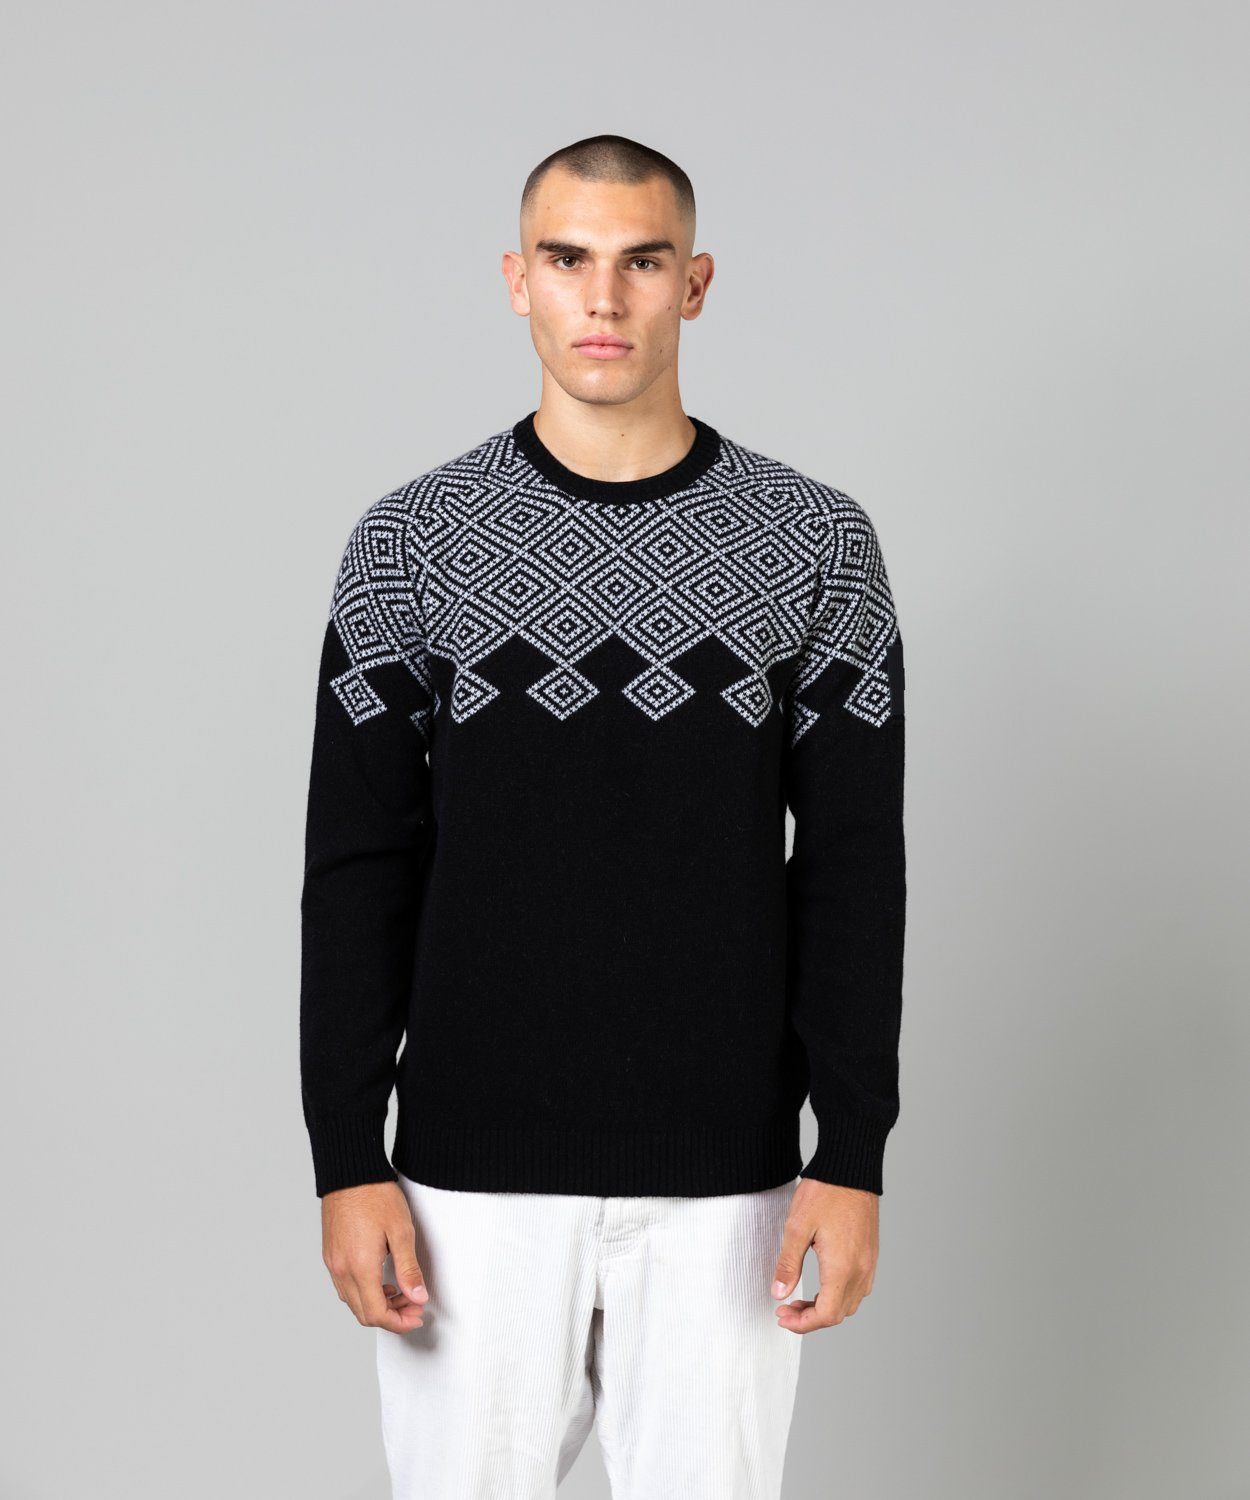 Men's Vernis Jaquard Crew Knit Sweaters | Knitwear Peak Performance Black S